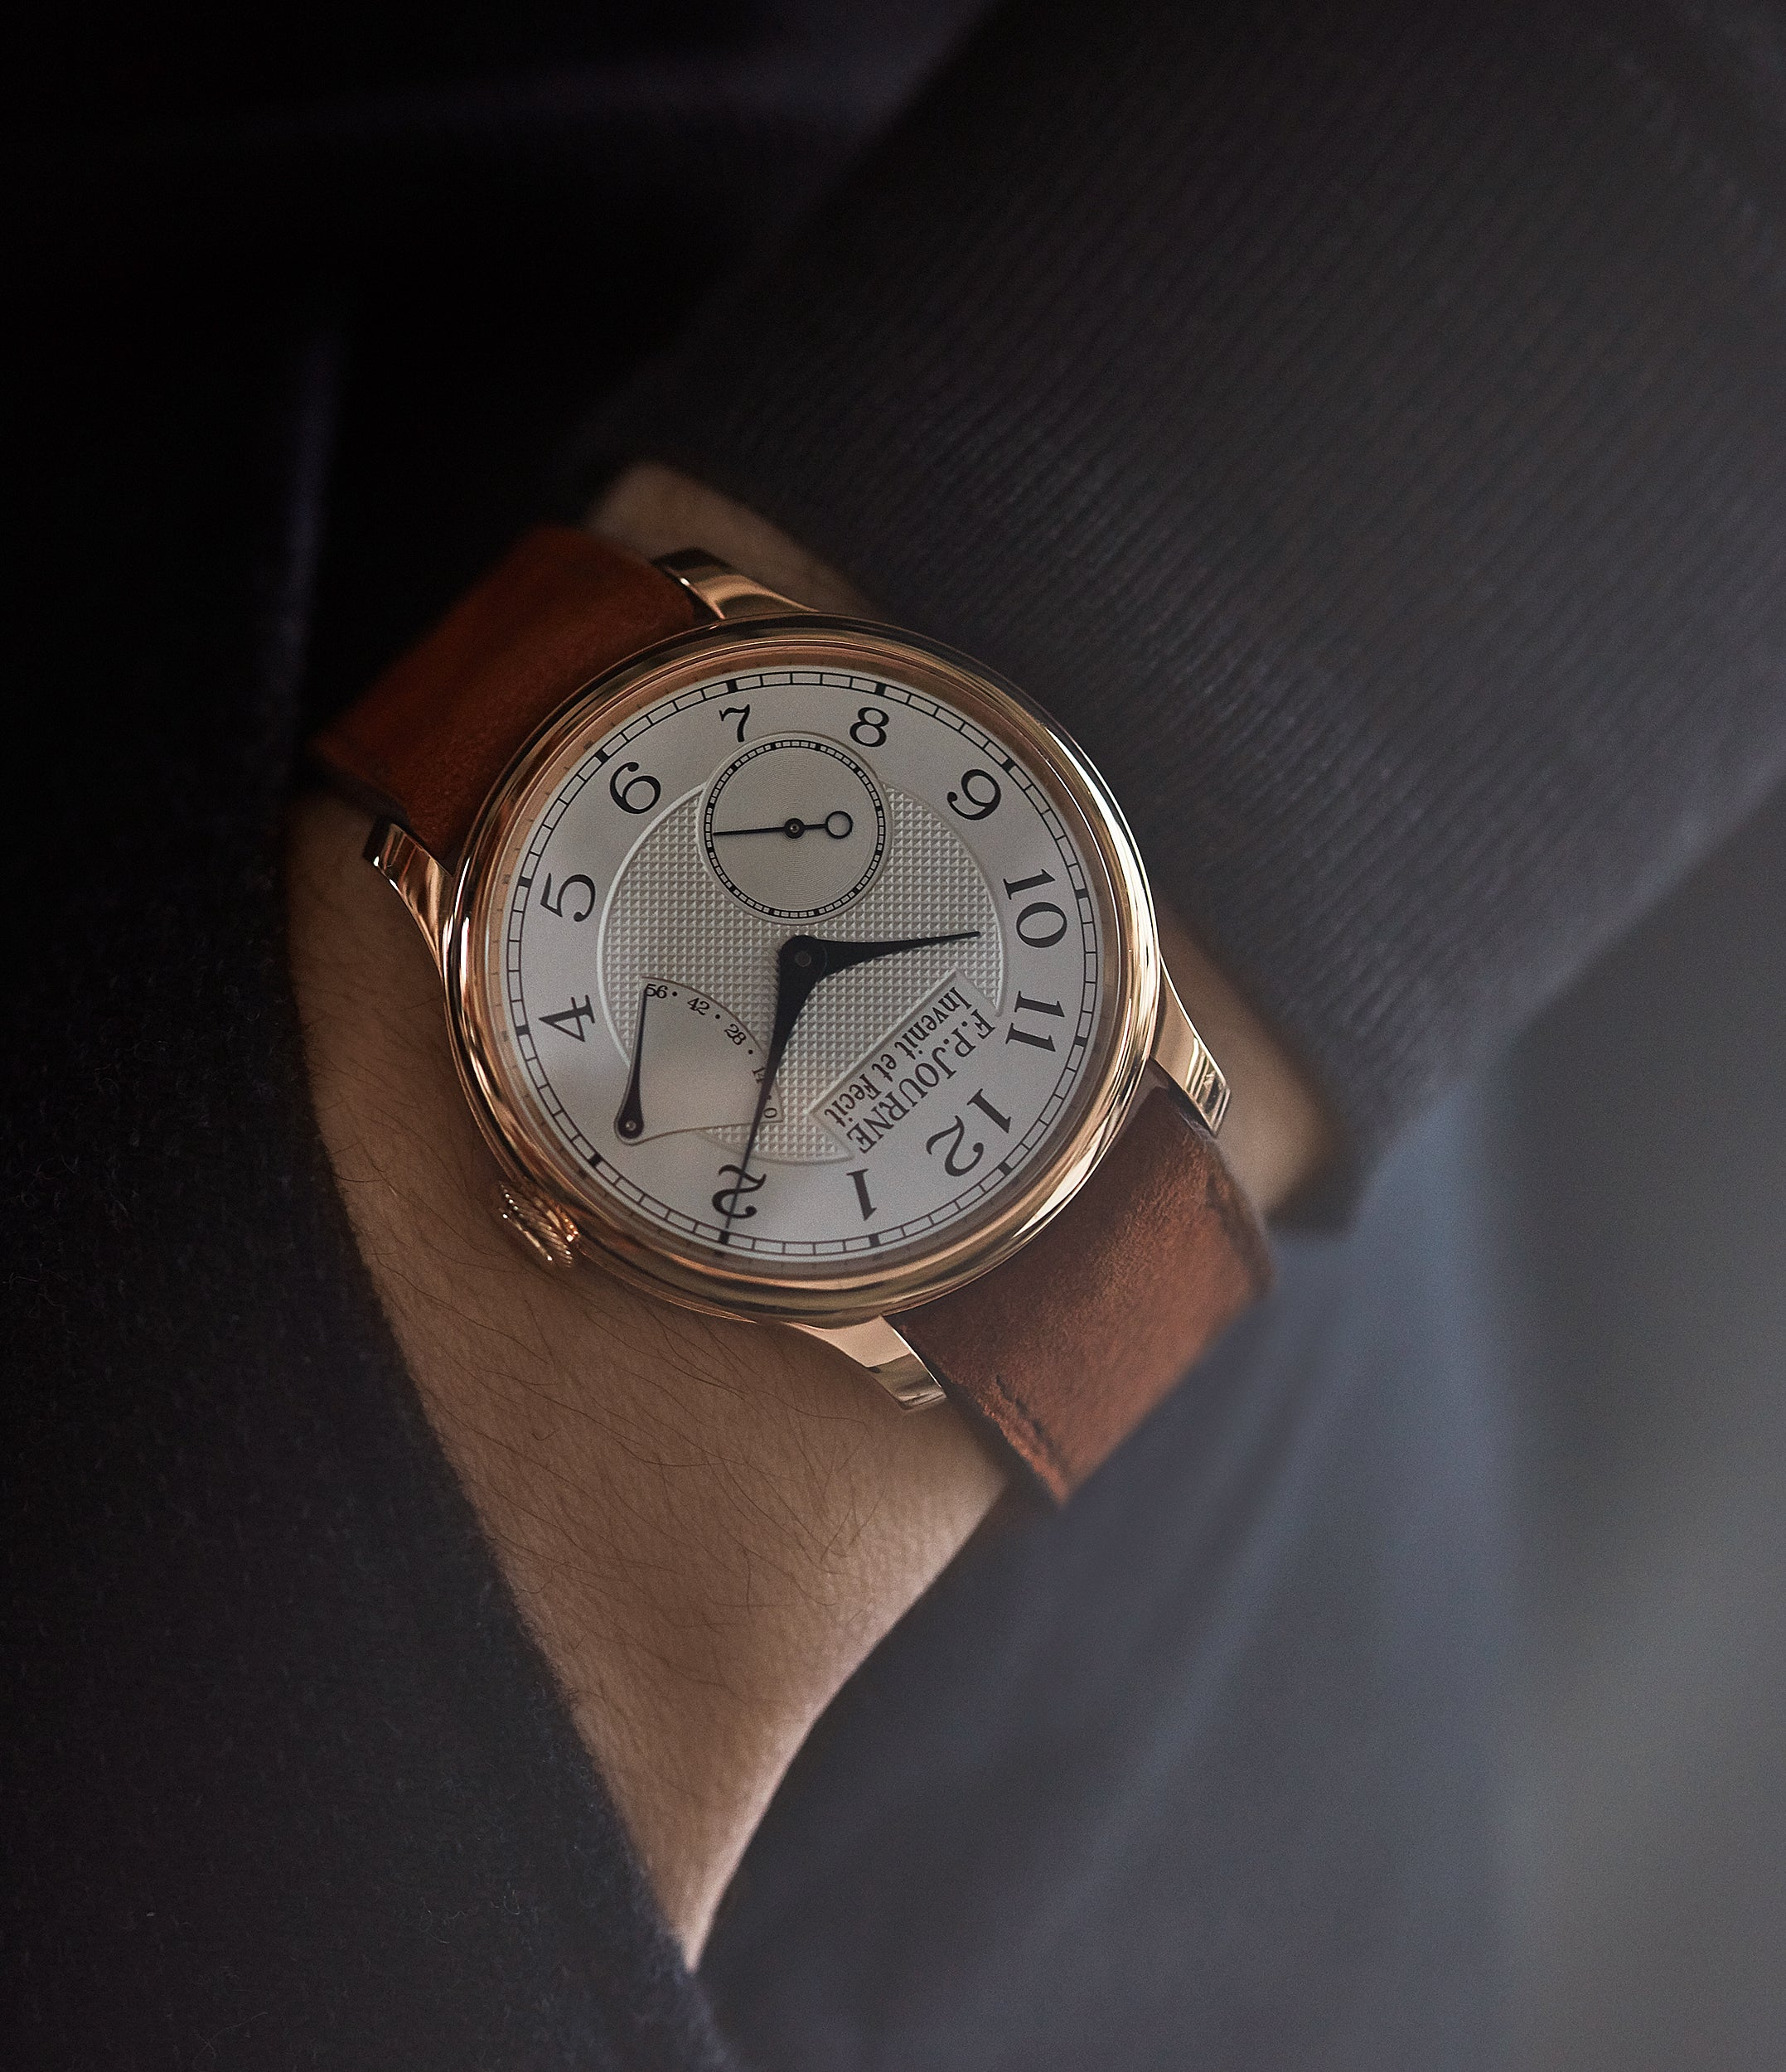 hands on with F. P. Journe Chronometre Souverain CS.RG.38 rose gold silver dial watch for sale online at A Collected Man London UK specialist of rare watches